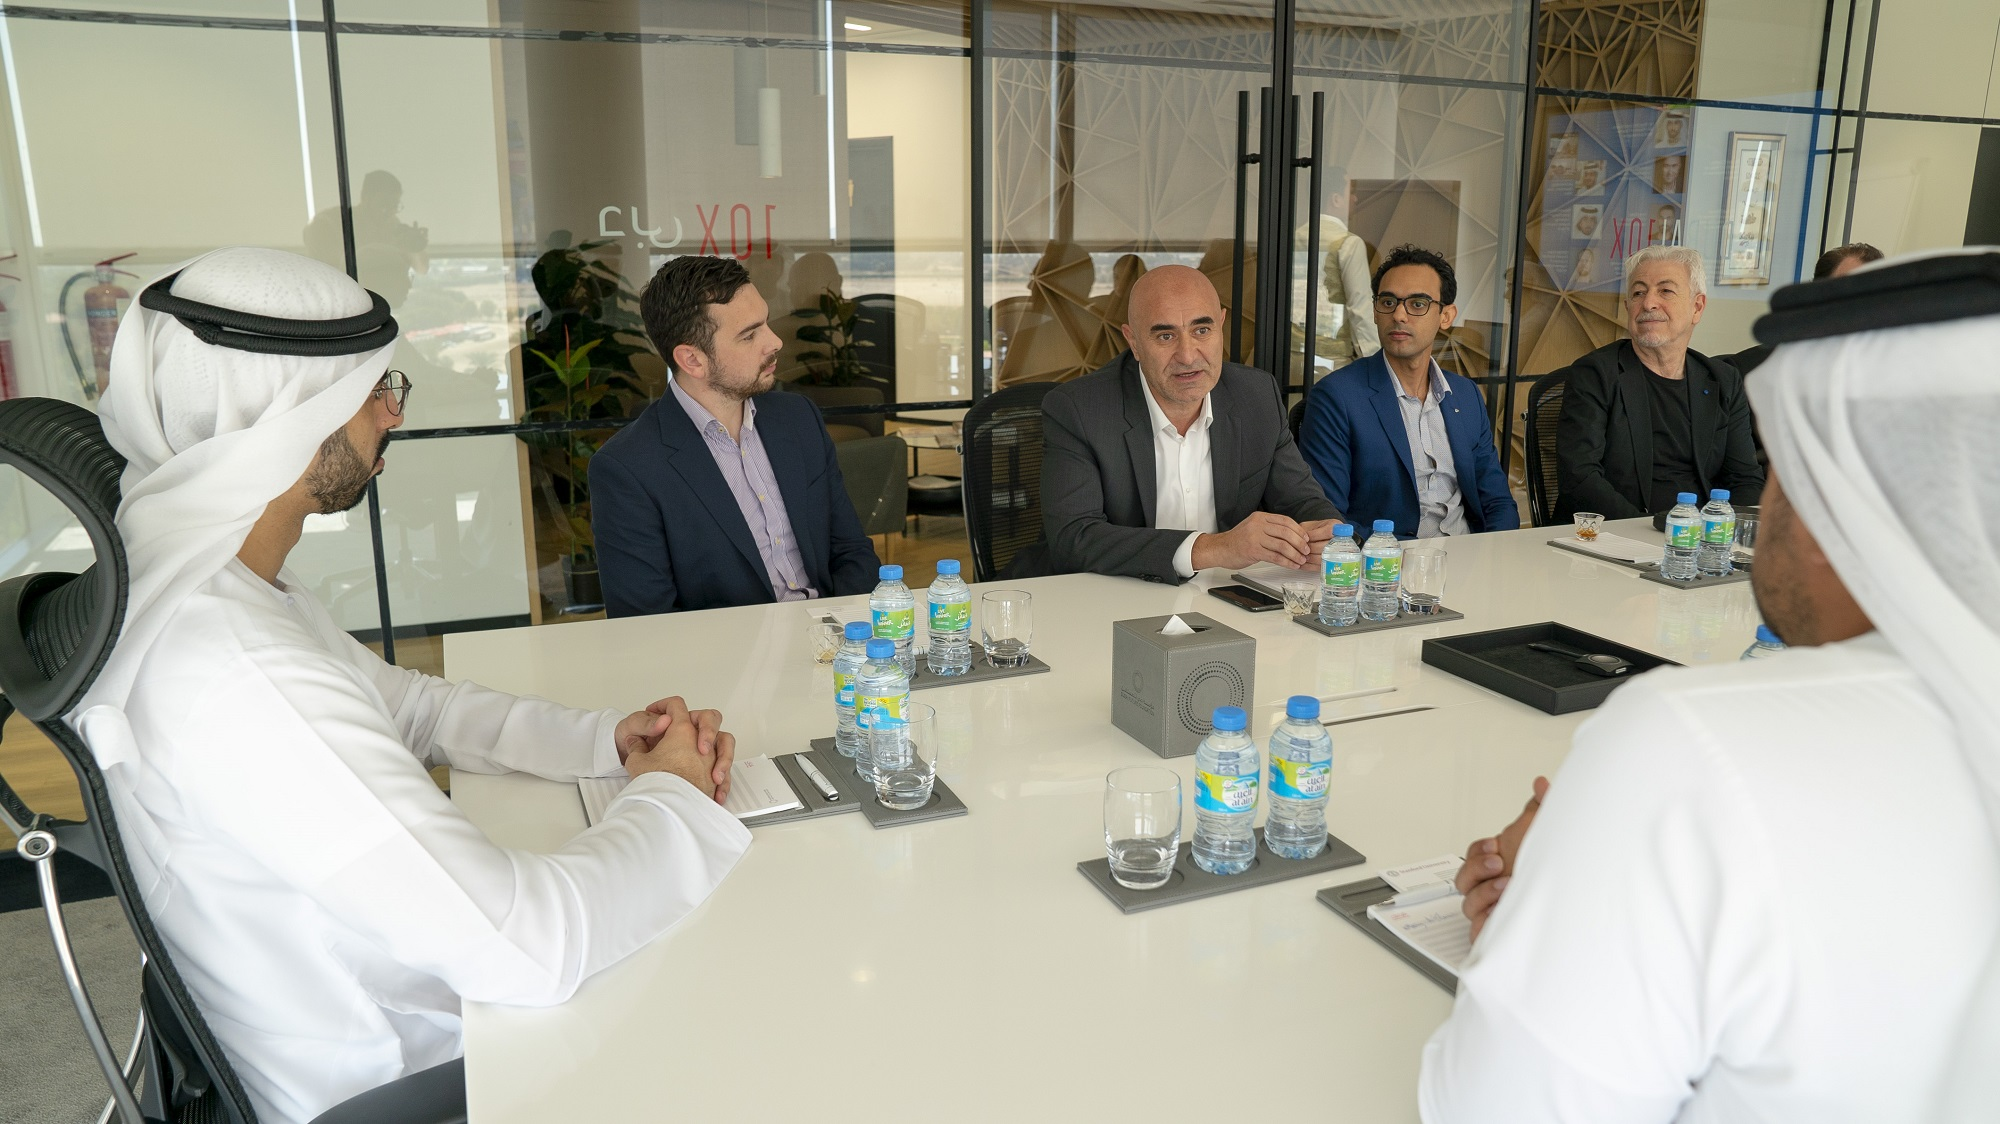 dubai future council on artificial intelligence holds its first meeting  1